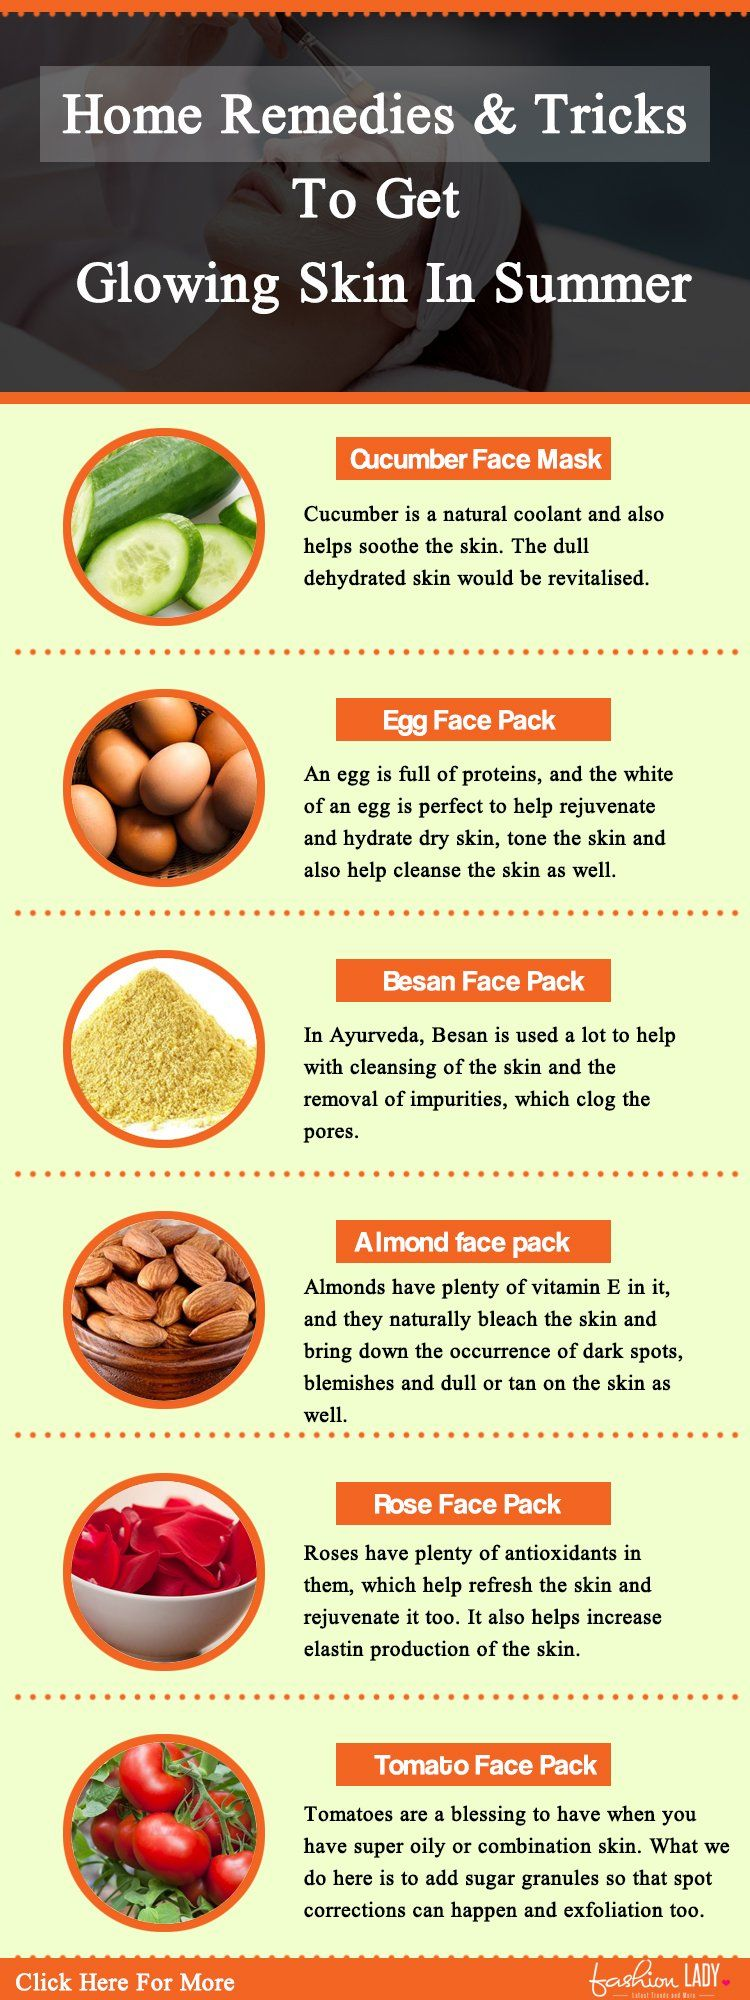 Pin On Remedies For Glowing Skin